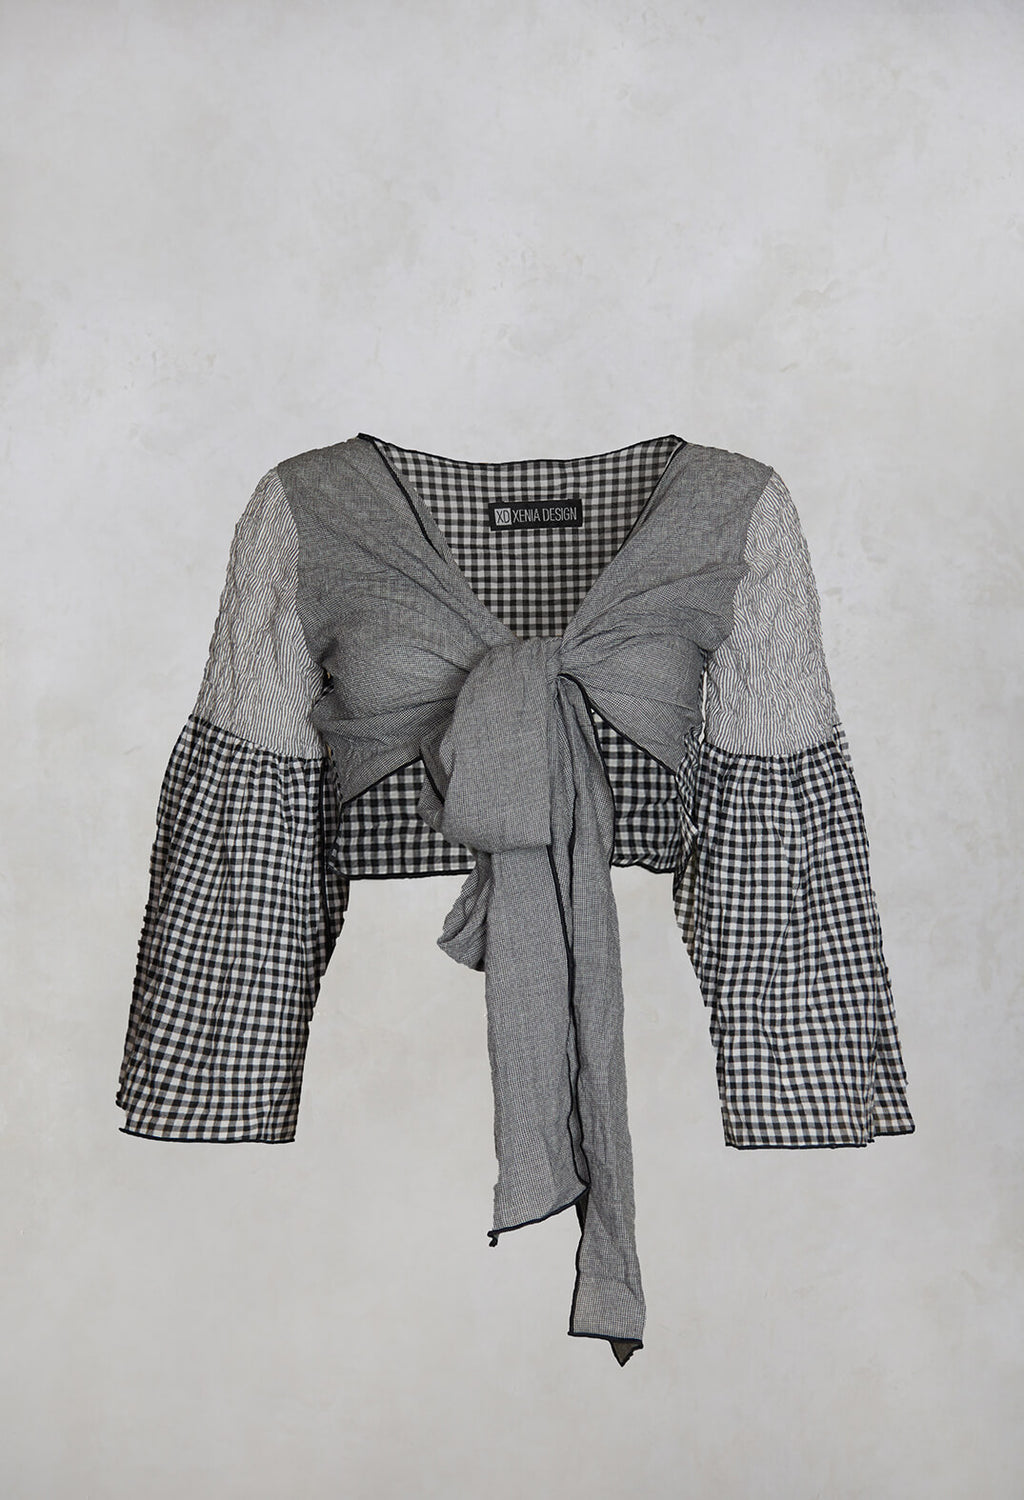 Span Cropped Tie Jacket in Gingham Check